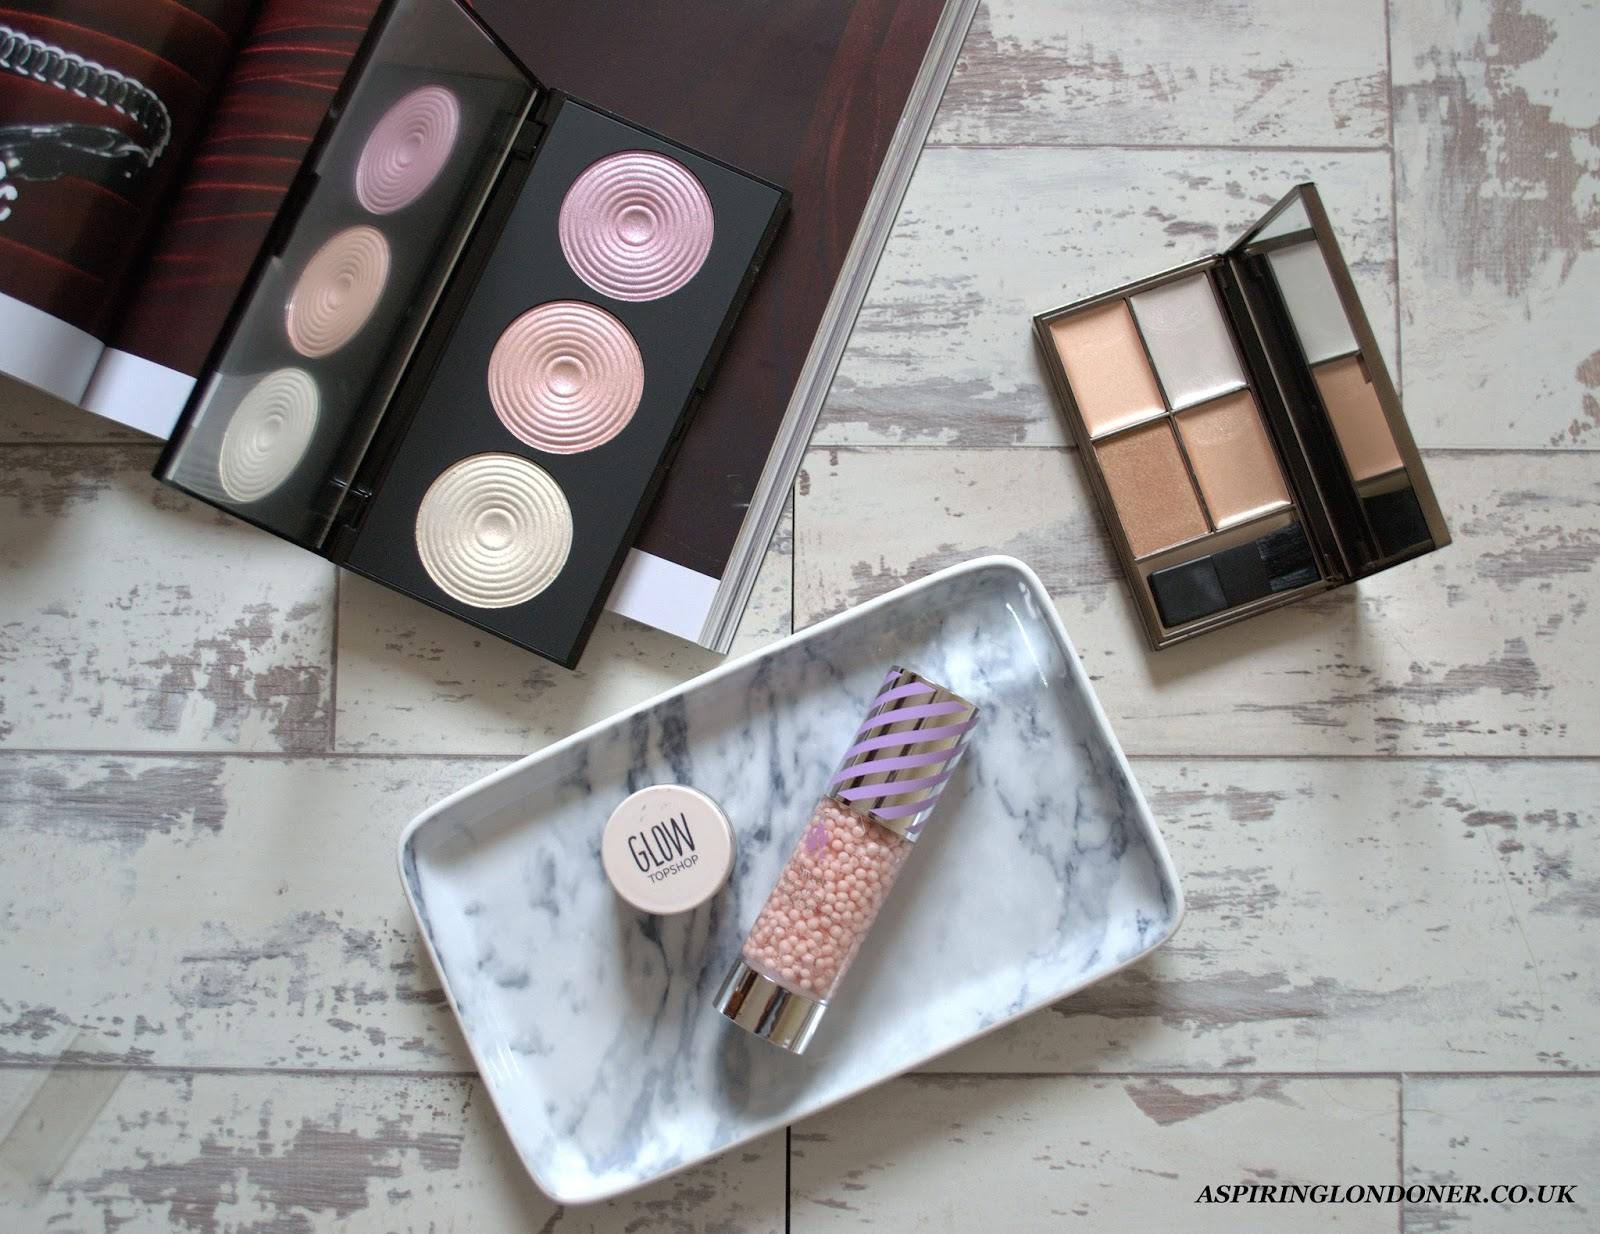 Budget Strobing ft Sleek, Makeup Revolution, Topshop, B Beauty - Aspiring Londoner